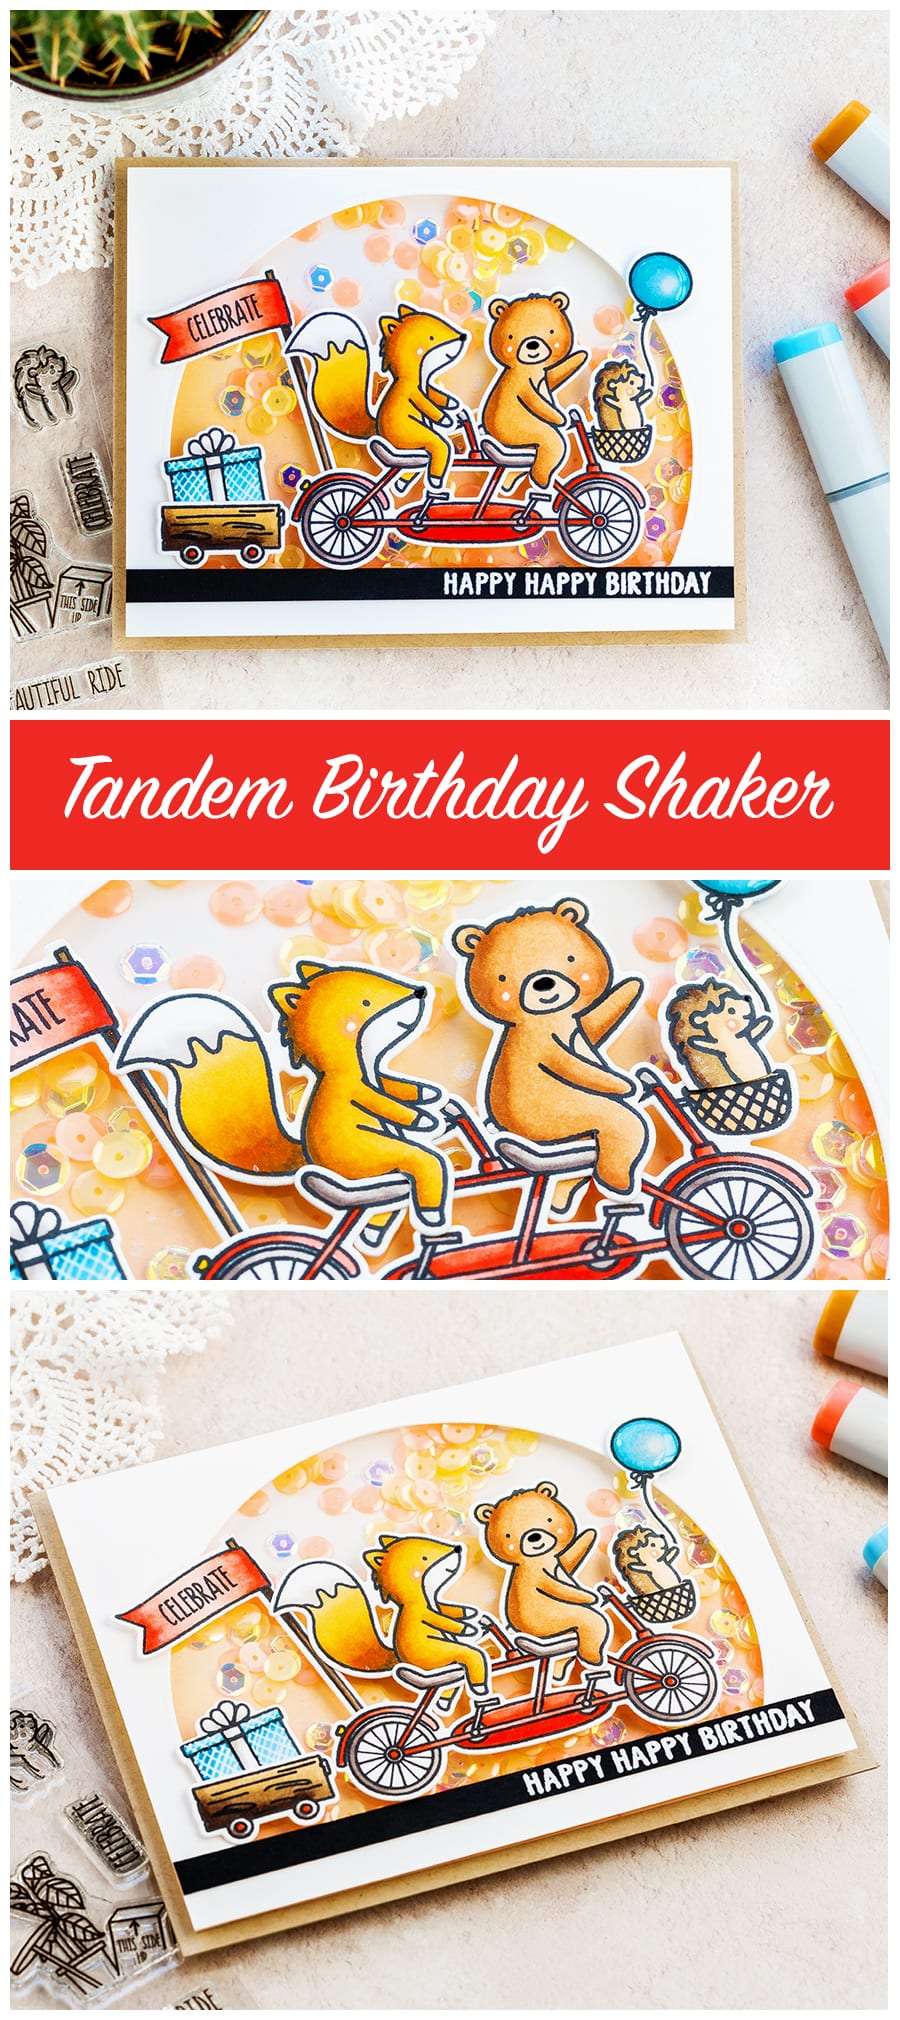 Cute shaker birthday card by Debby Hughes using the new Ride With Me set from Neat & Tangled. Find out more here: http://limedoodledesign.com/2018/02/cute-shaker-card-new-neat-tangled-giveaway/